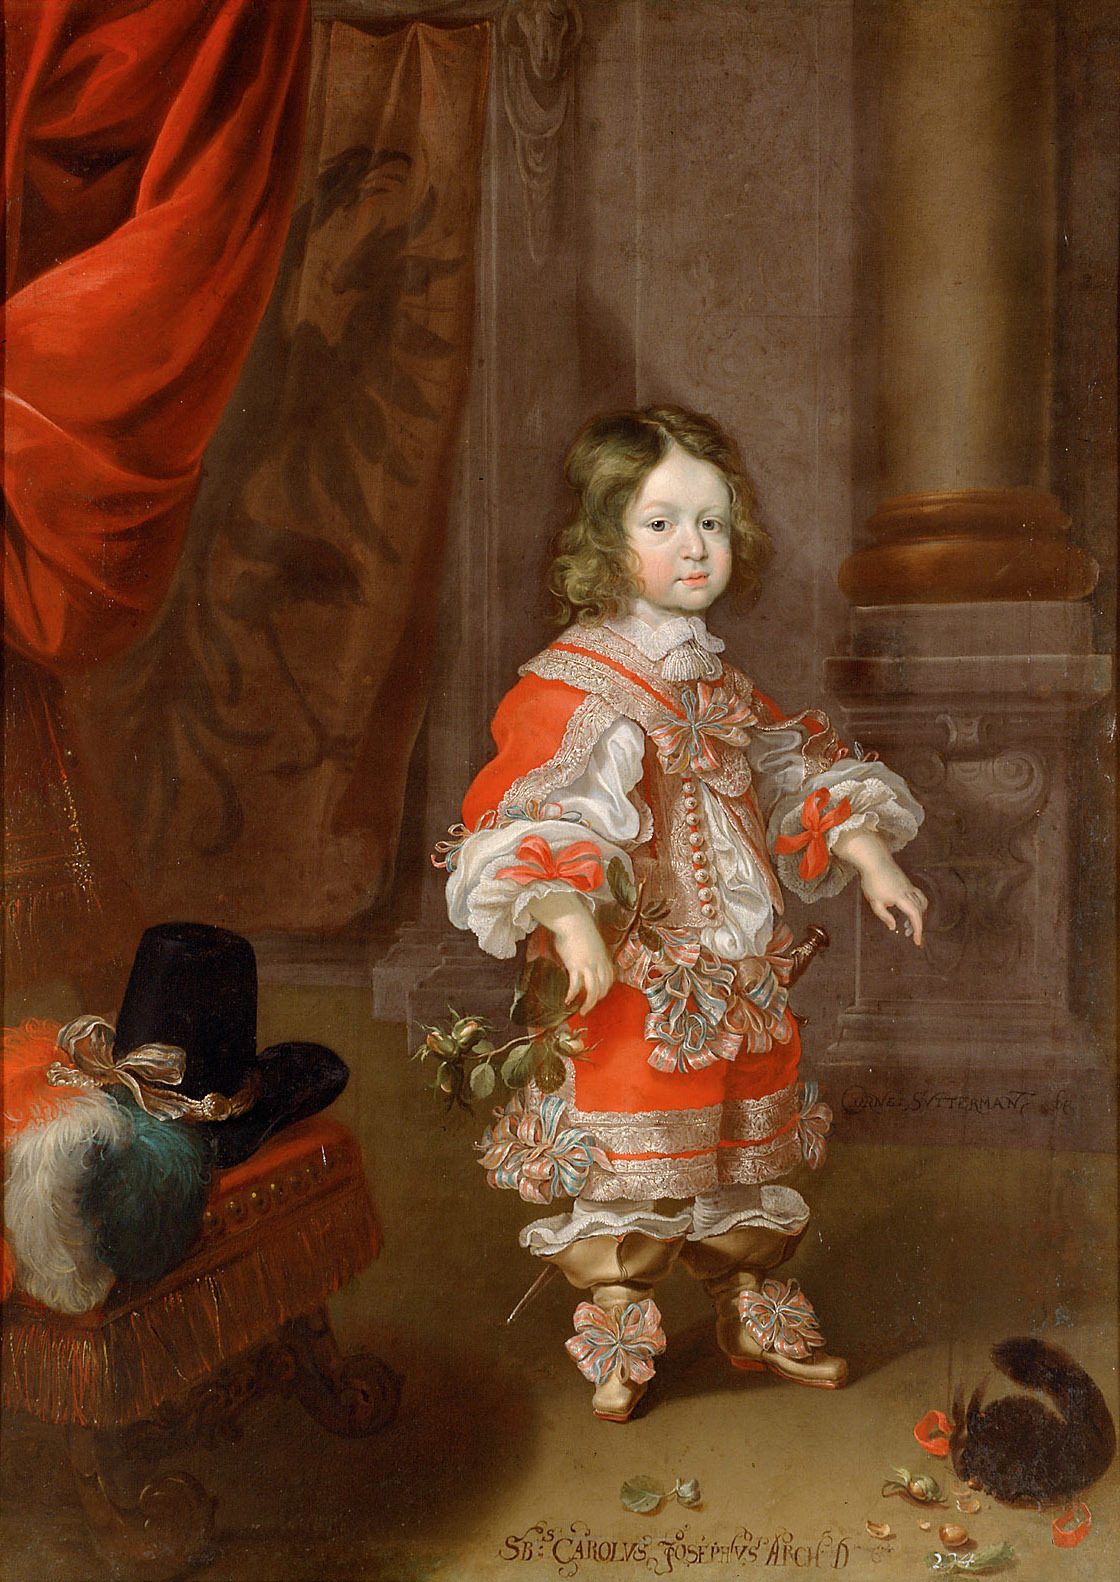 https://upload.wikimedia.org/wikipedia/commons/2/2f/Cornelis_Sustermans_-_Archduke_Charles_Joseph_%281649-1664%29_with_squirrel%2C_aged_four_to_five_years.jpg